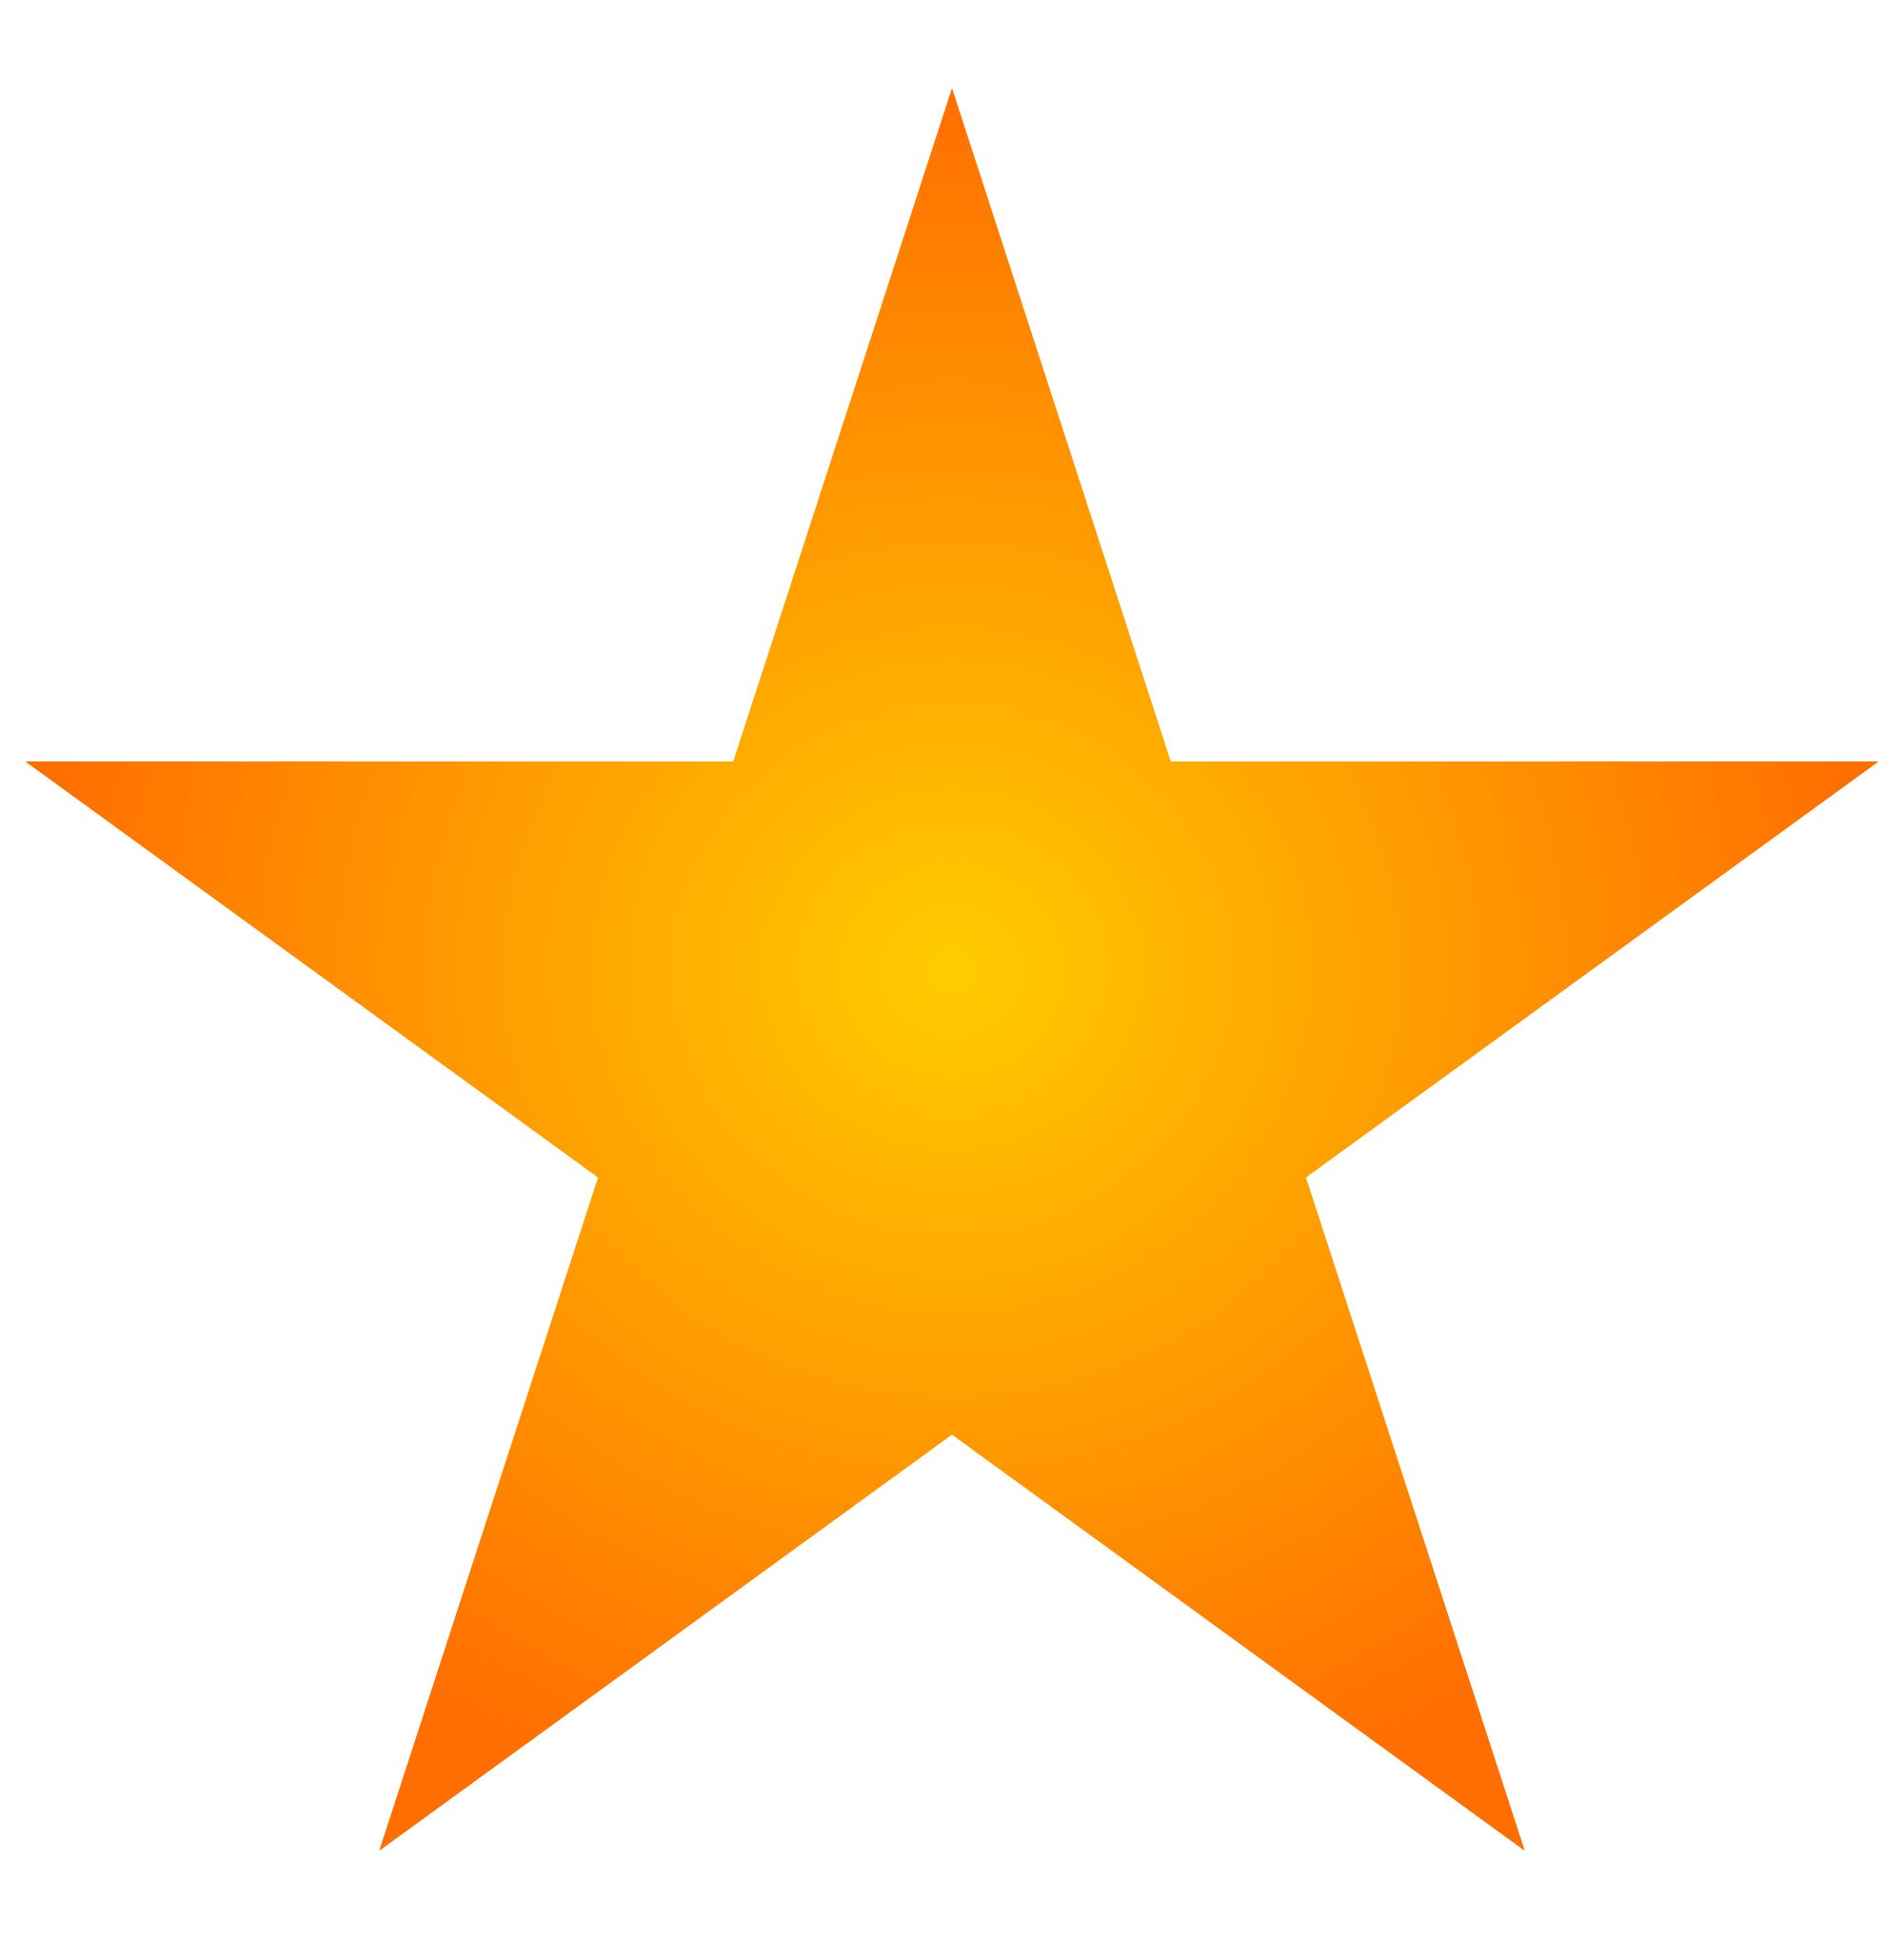 Star png. Download image free icons